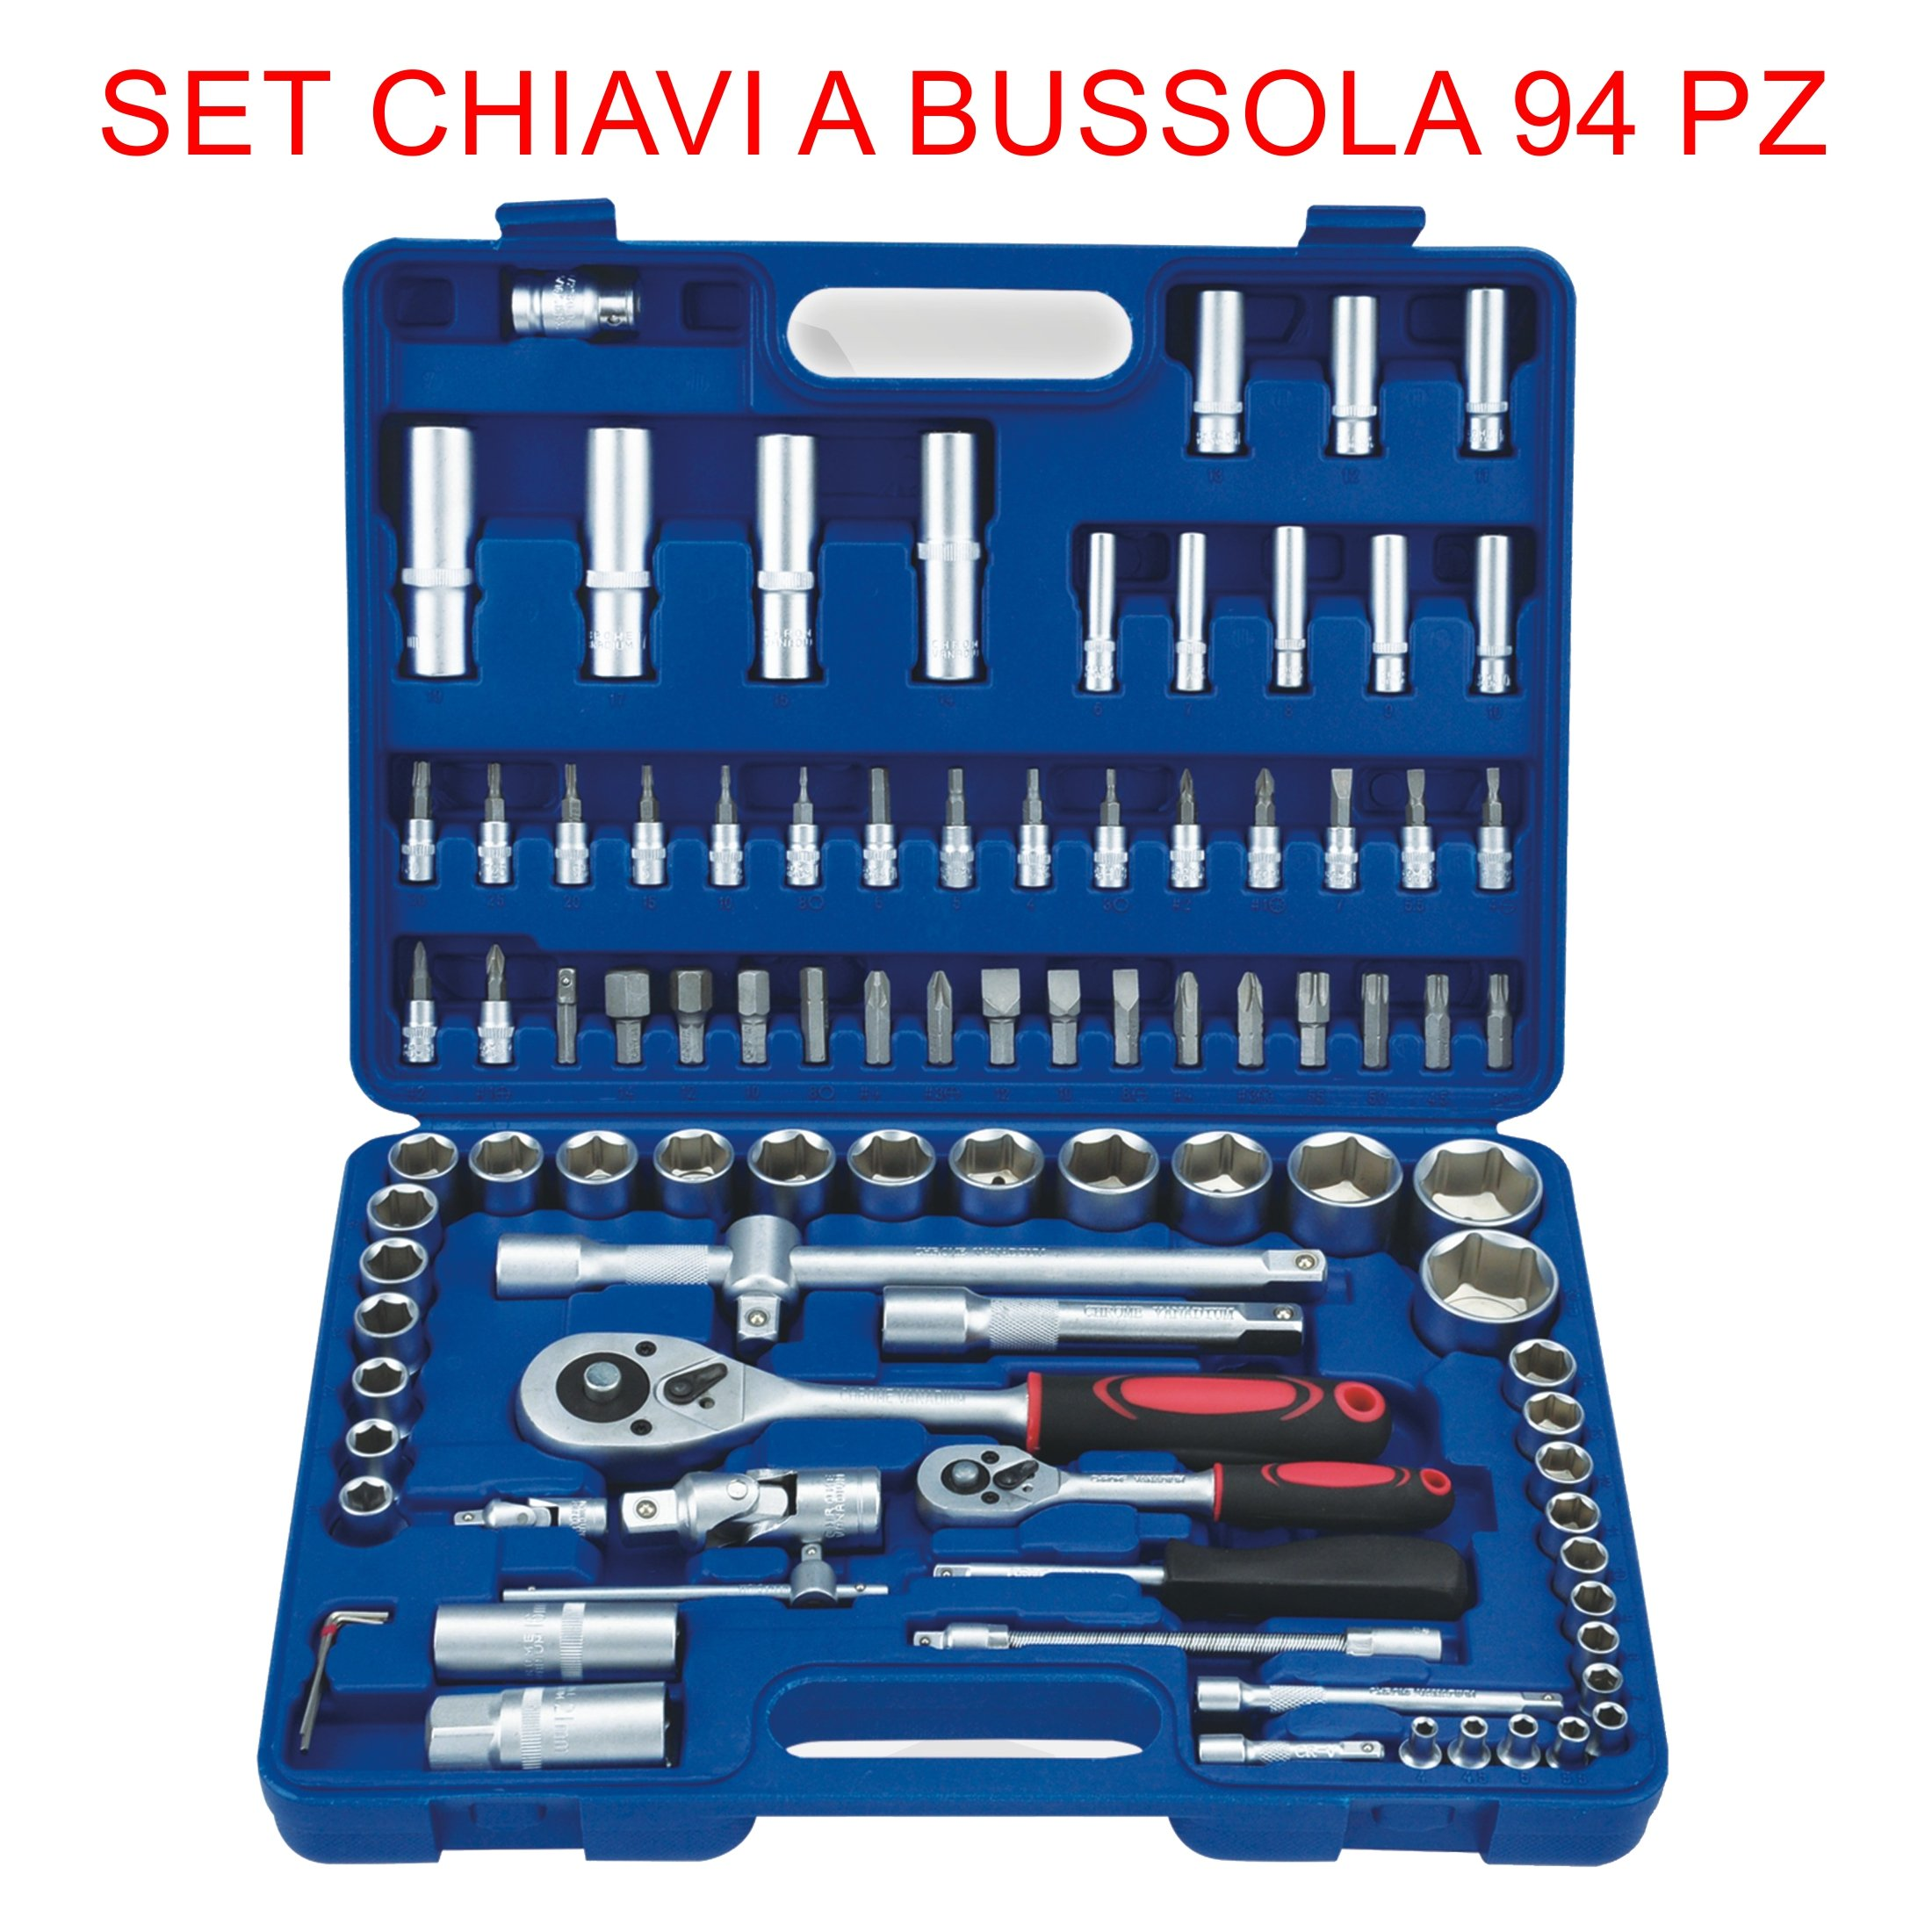 euronovità en-28891Ratchet Combination Spanners Set, 94Pieces, Socket with Inserts, Hand Tools for Work